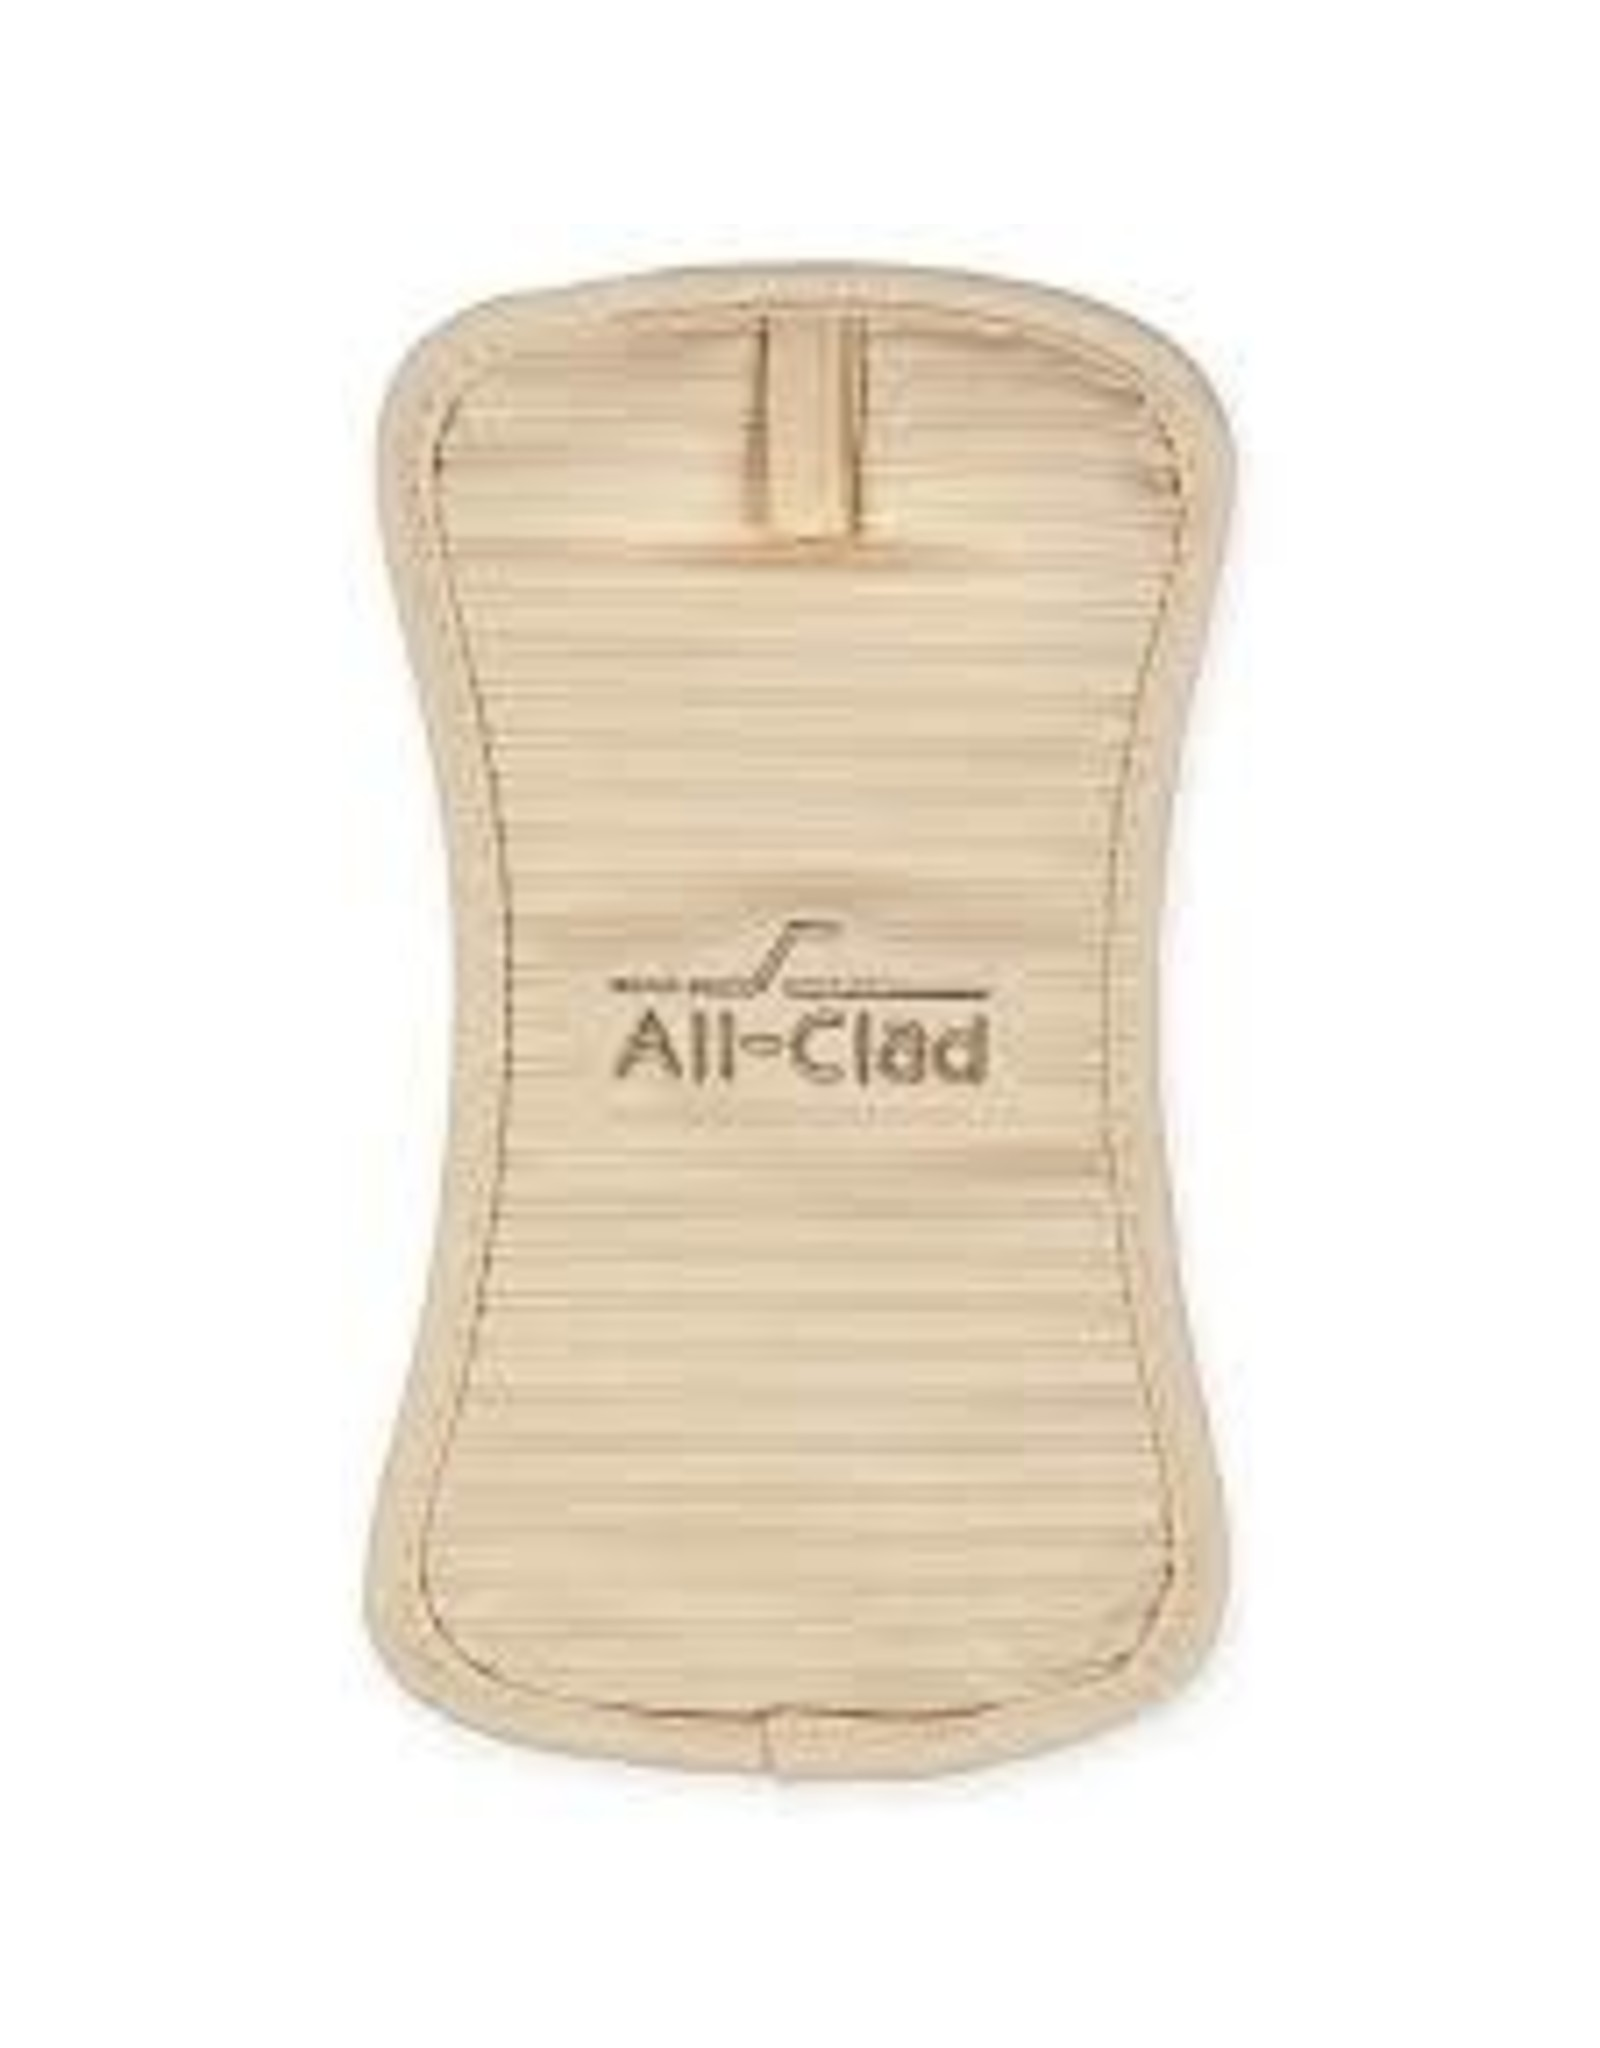 All Clad ALL CLAD-  Silicone Pot Holder Almond 6x10